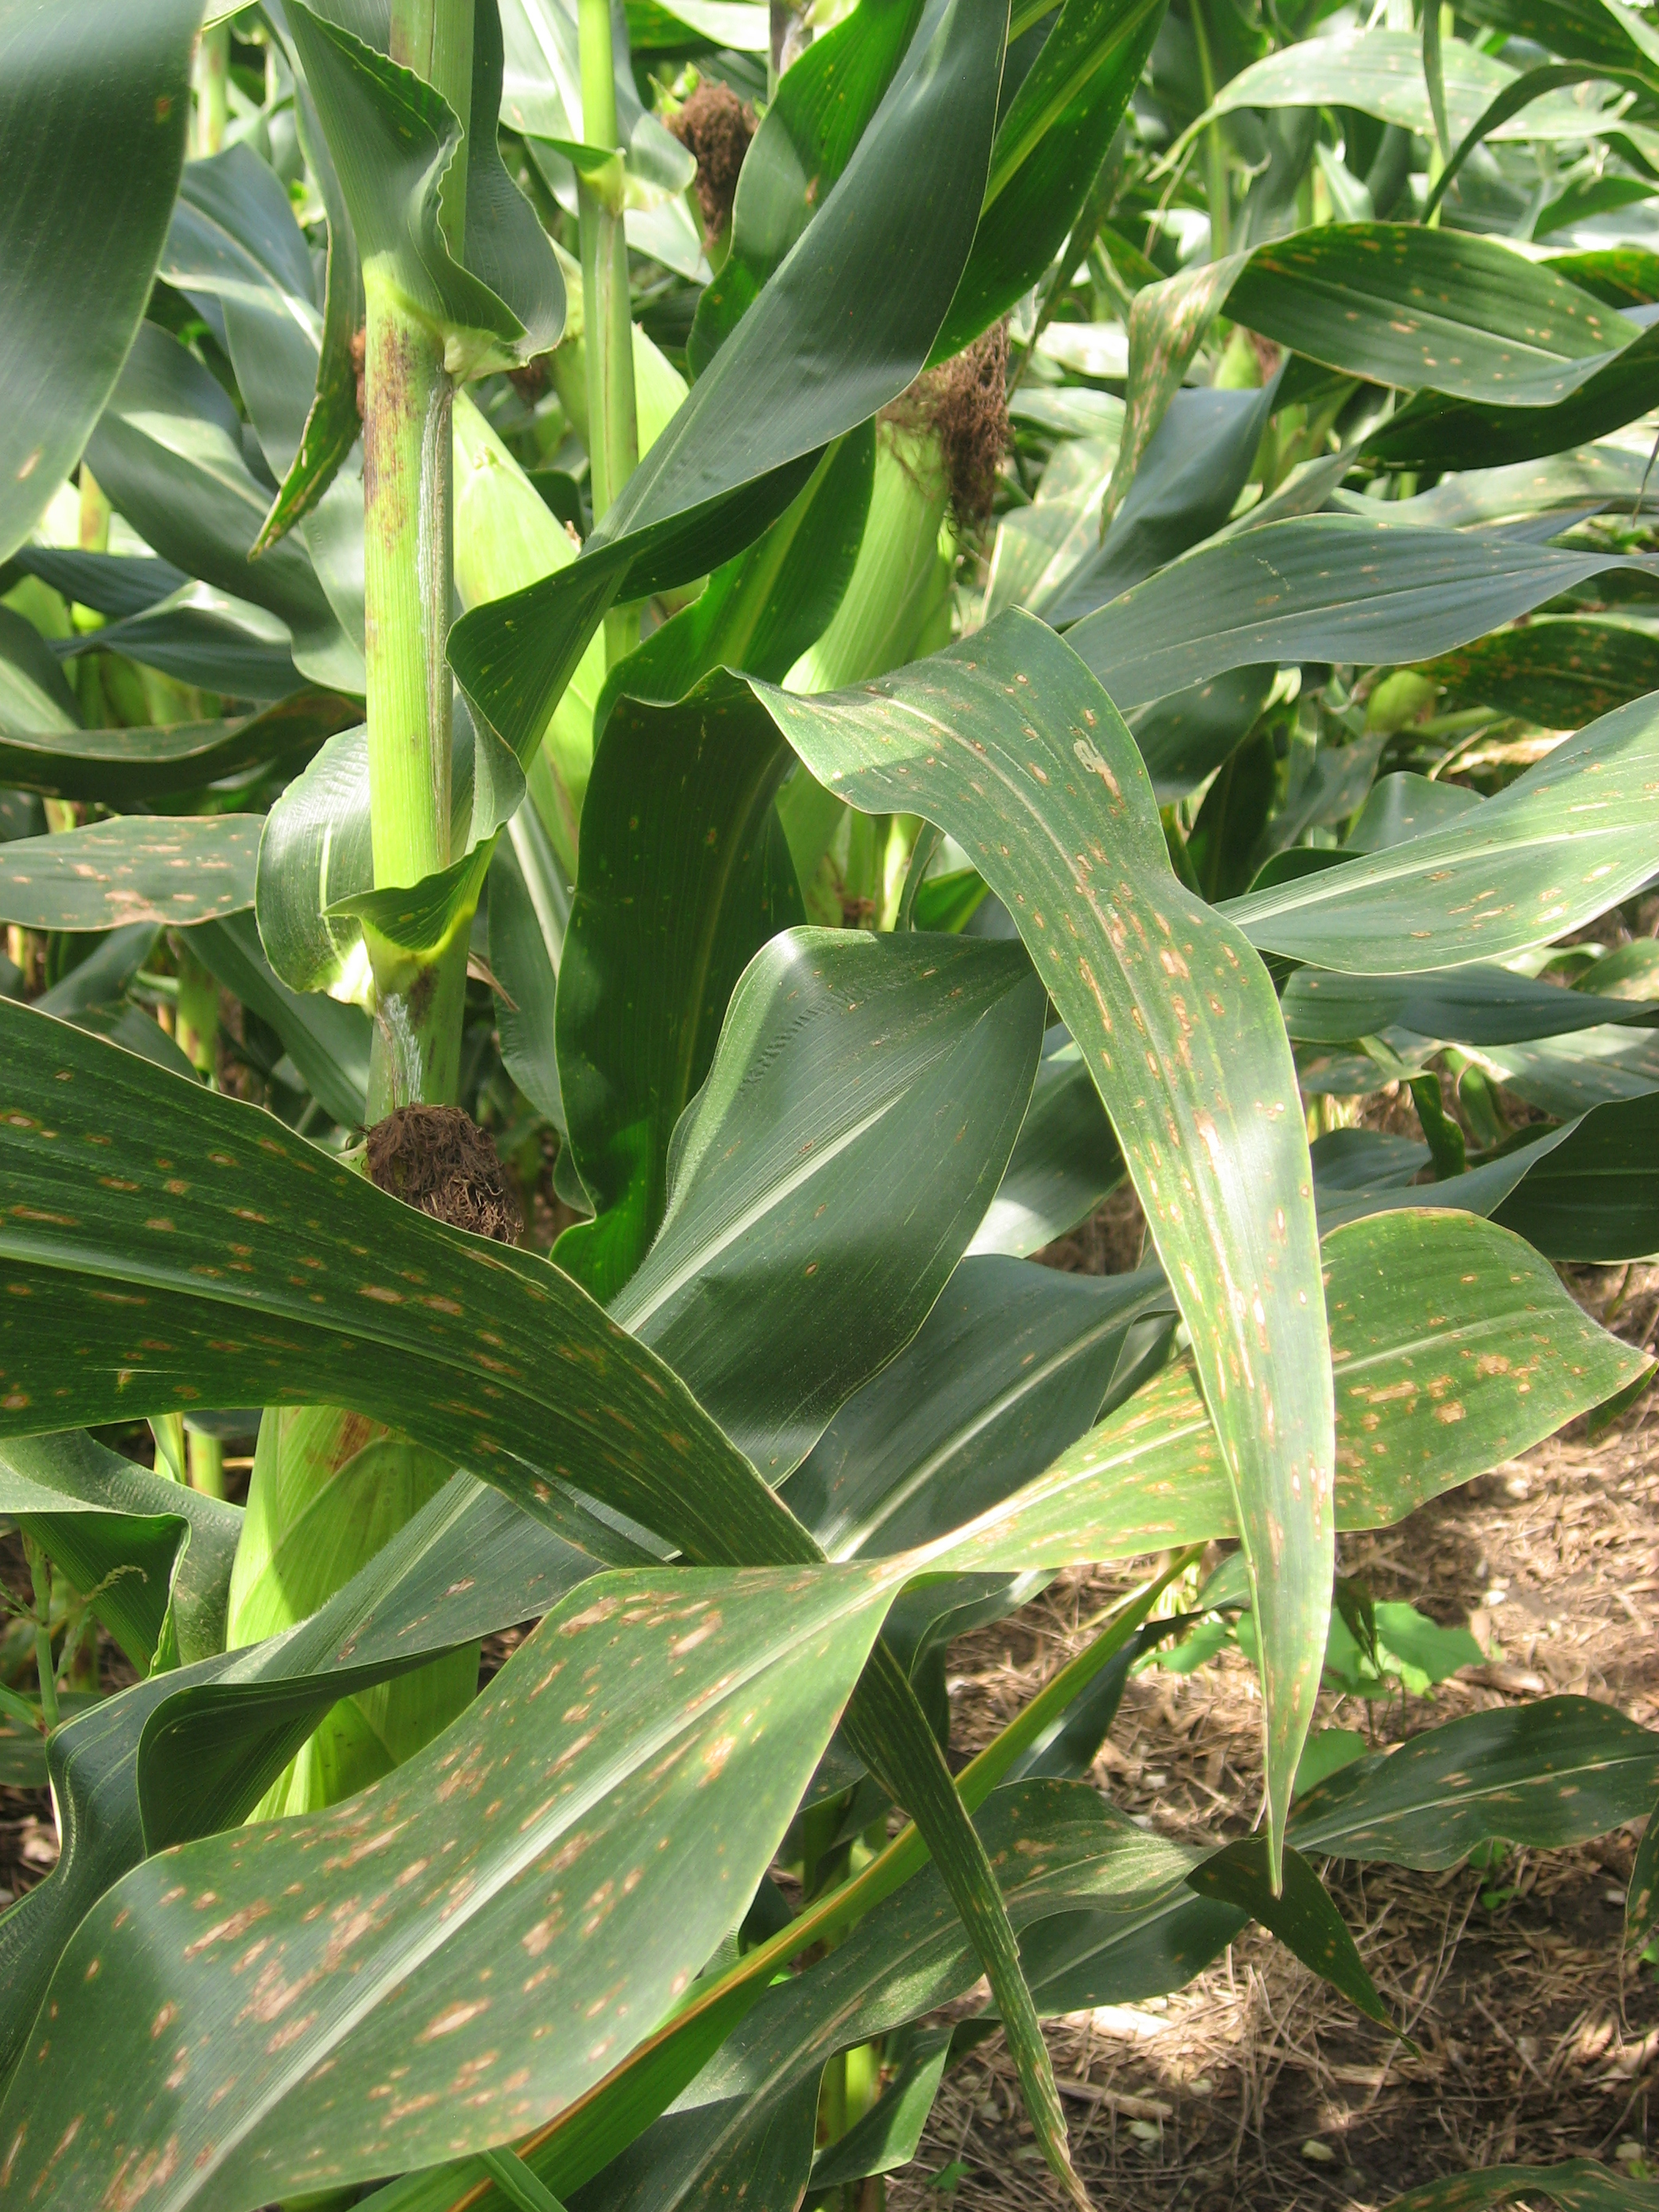 Gray leaf spot symptoms on lower canopy corn leaves.